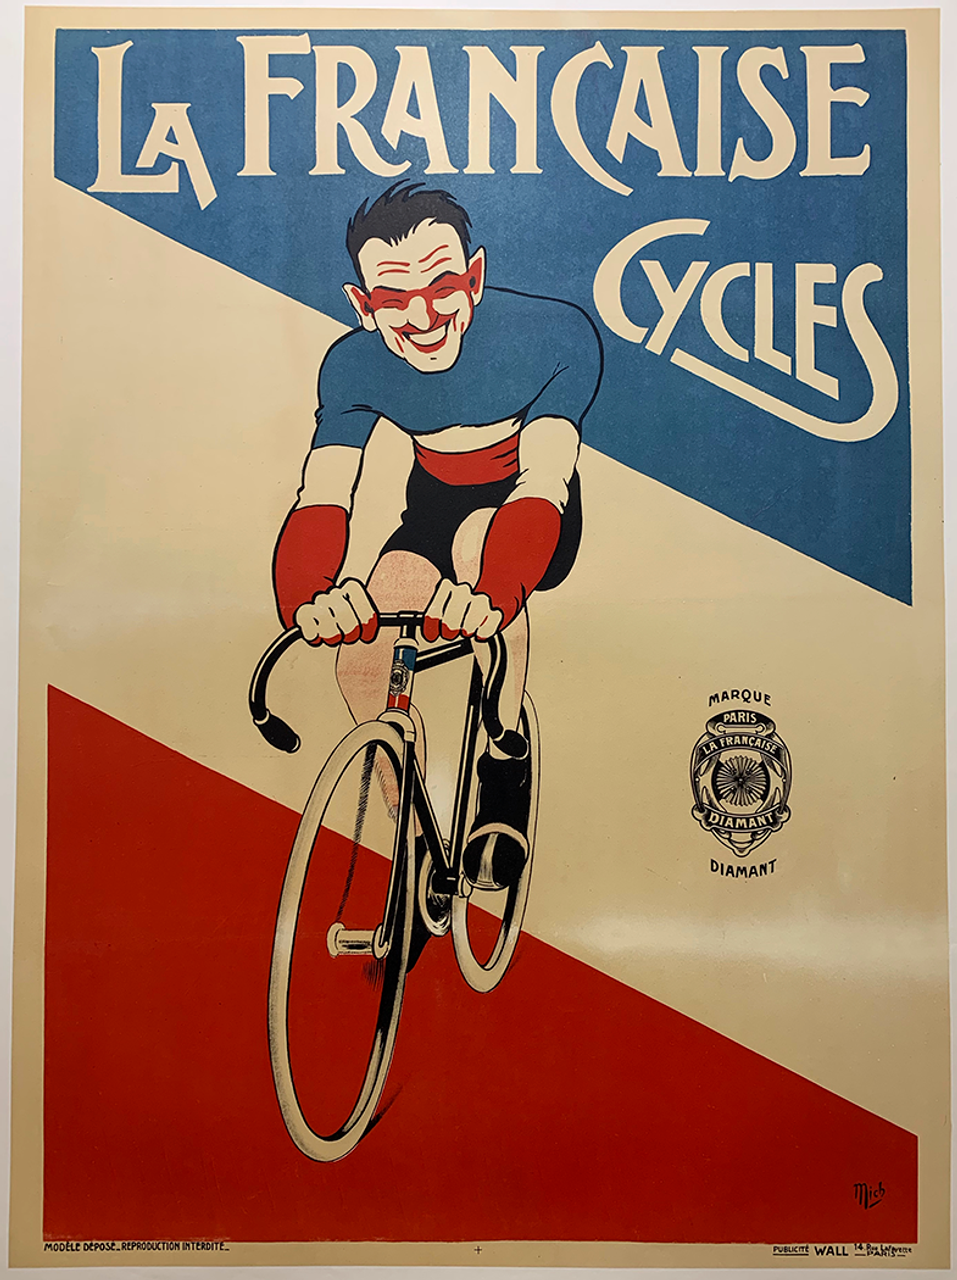 La Francaise Cycles Original Vintage Bicycle Poster by Mich